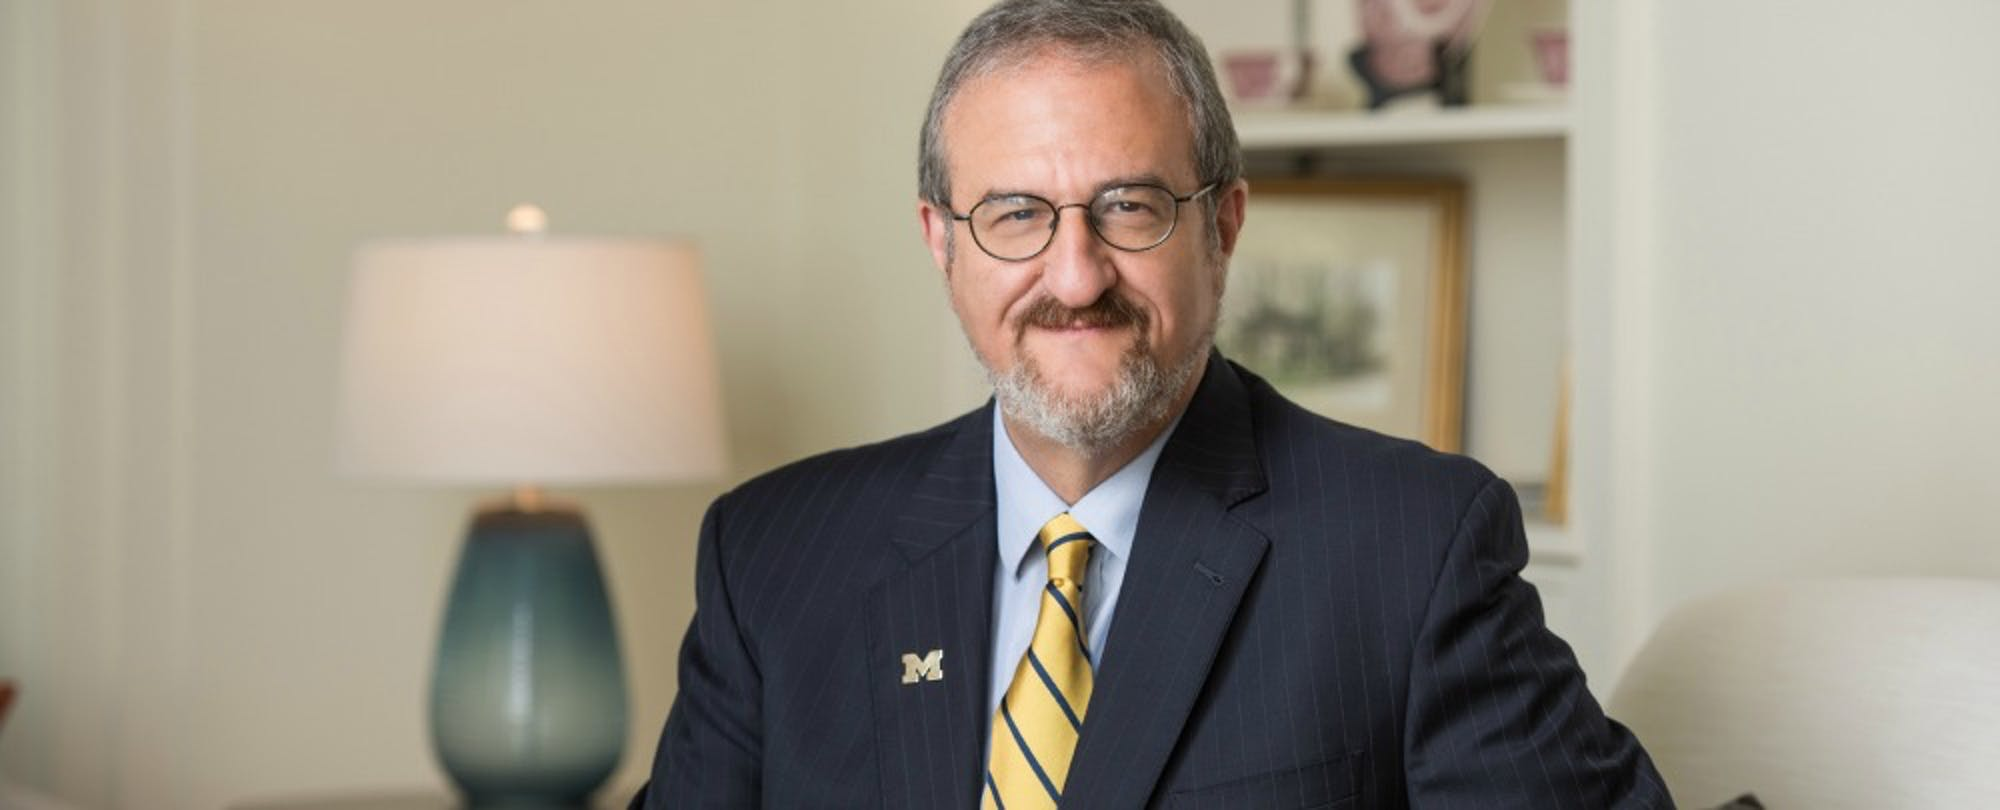 Why U. of Michigan's President Says Universities Should Work to Transform Teaching